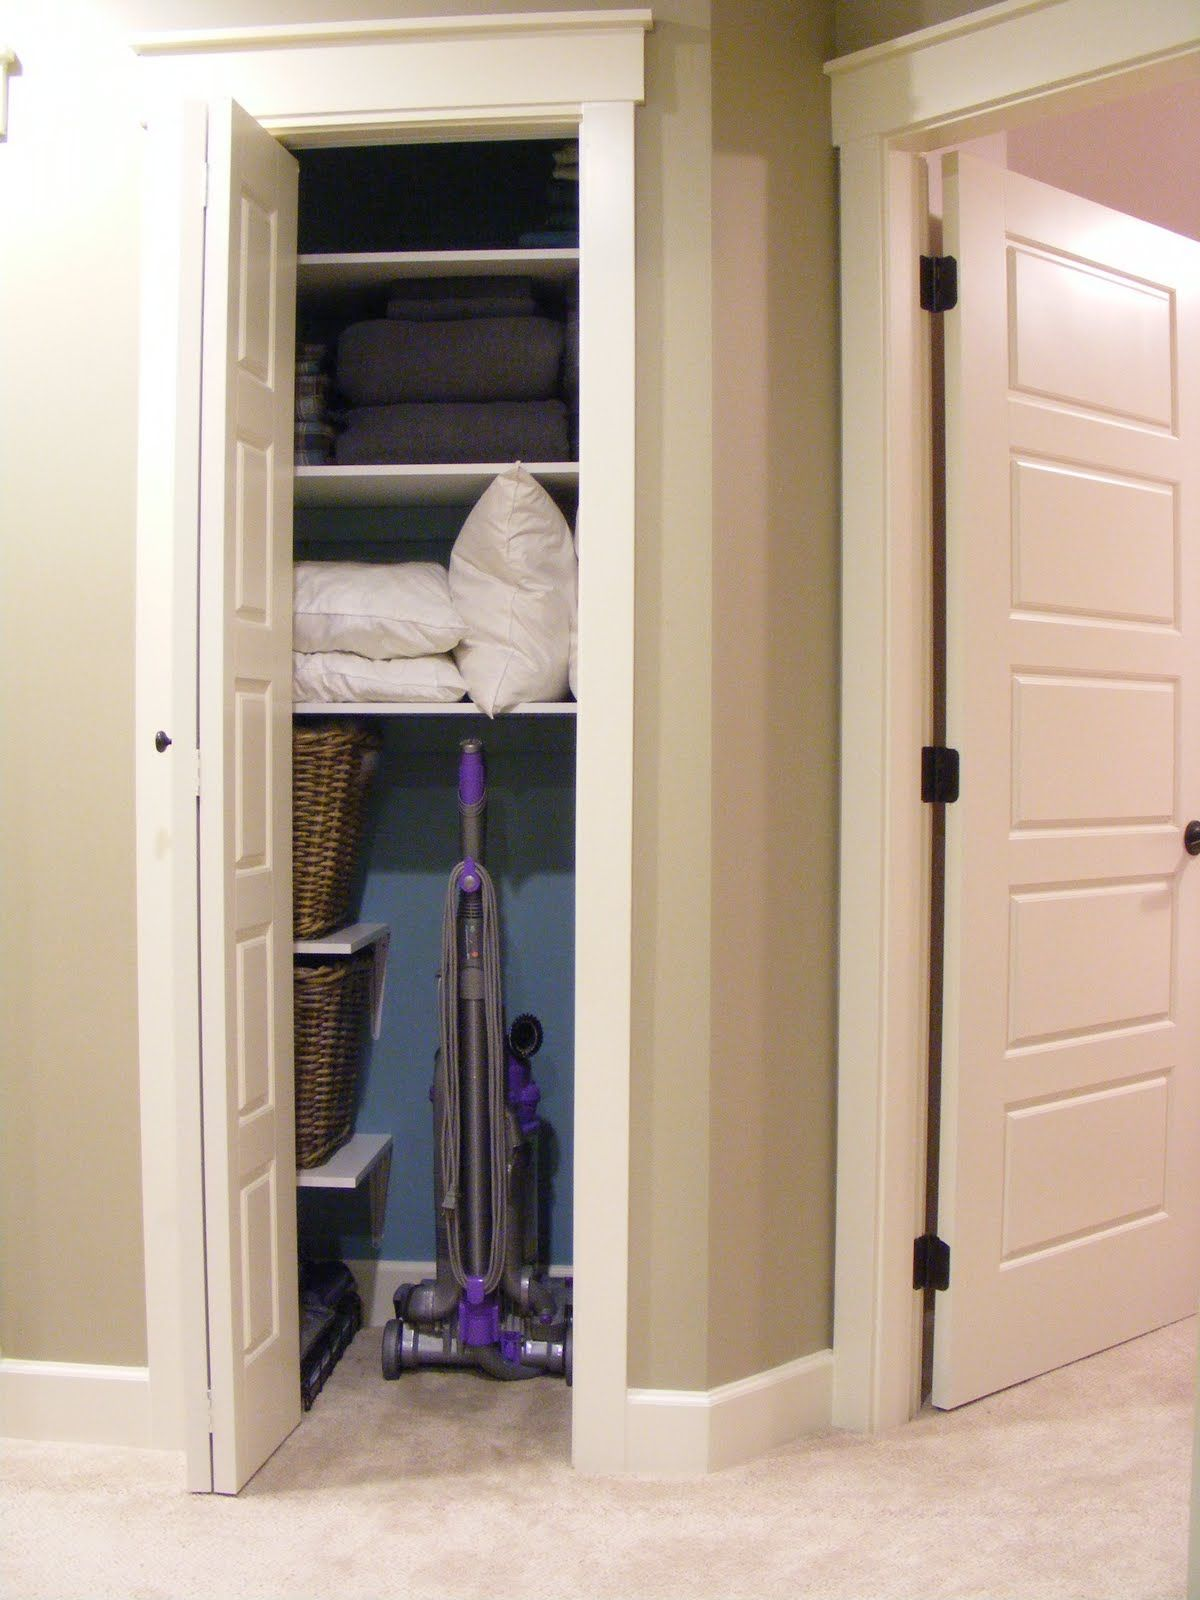 Small closet doors the small utility closet - Hall Small Linen Closets And Here S What It Looks Like After